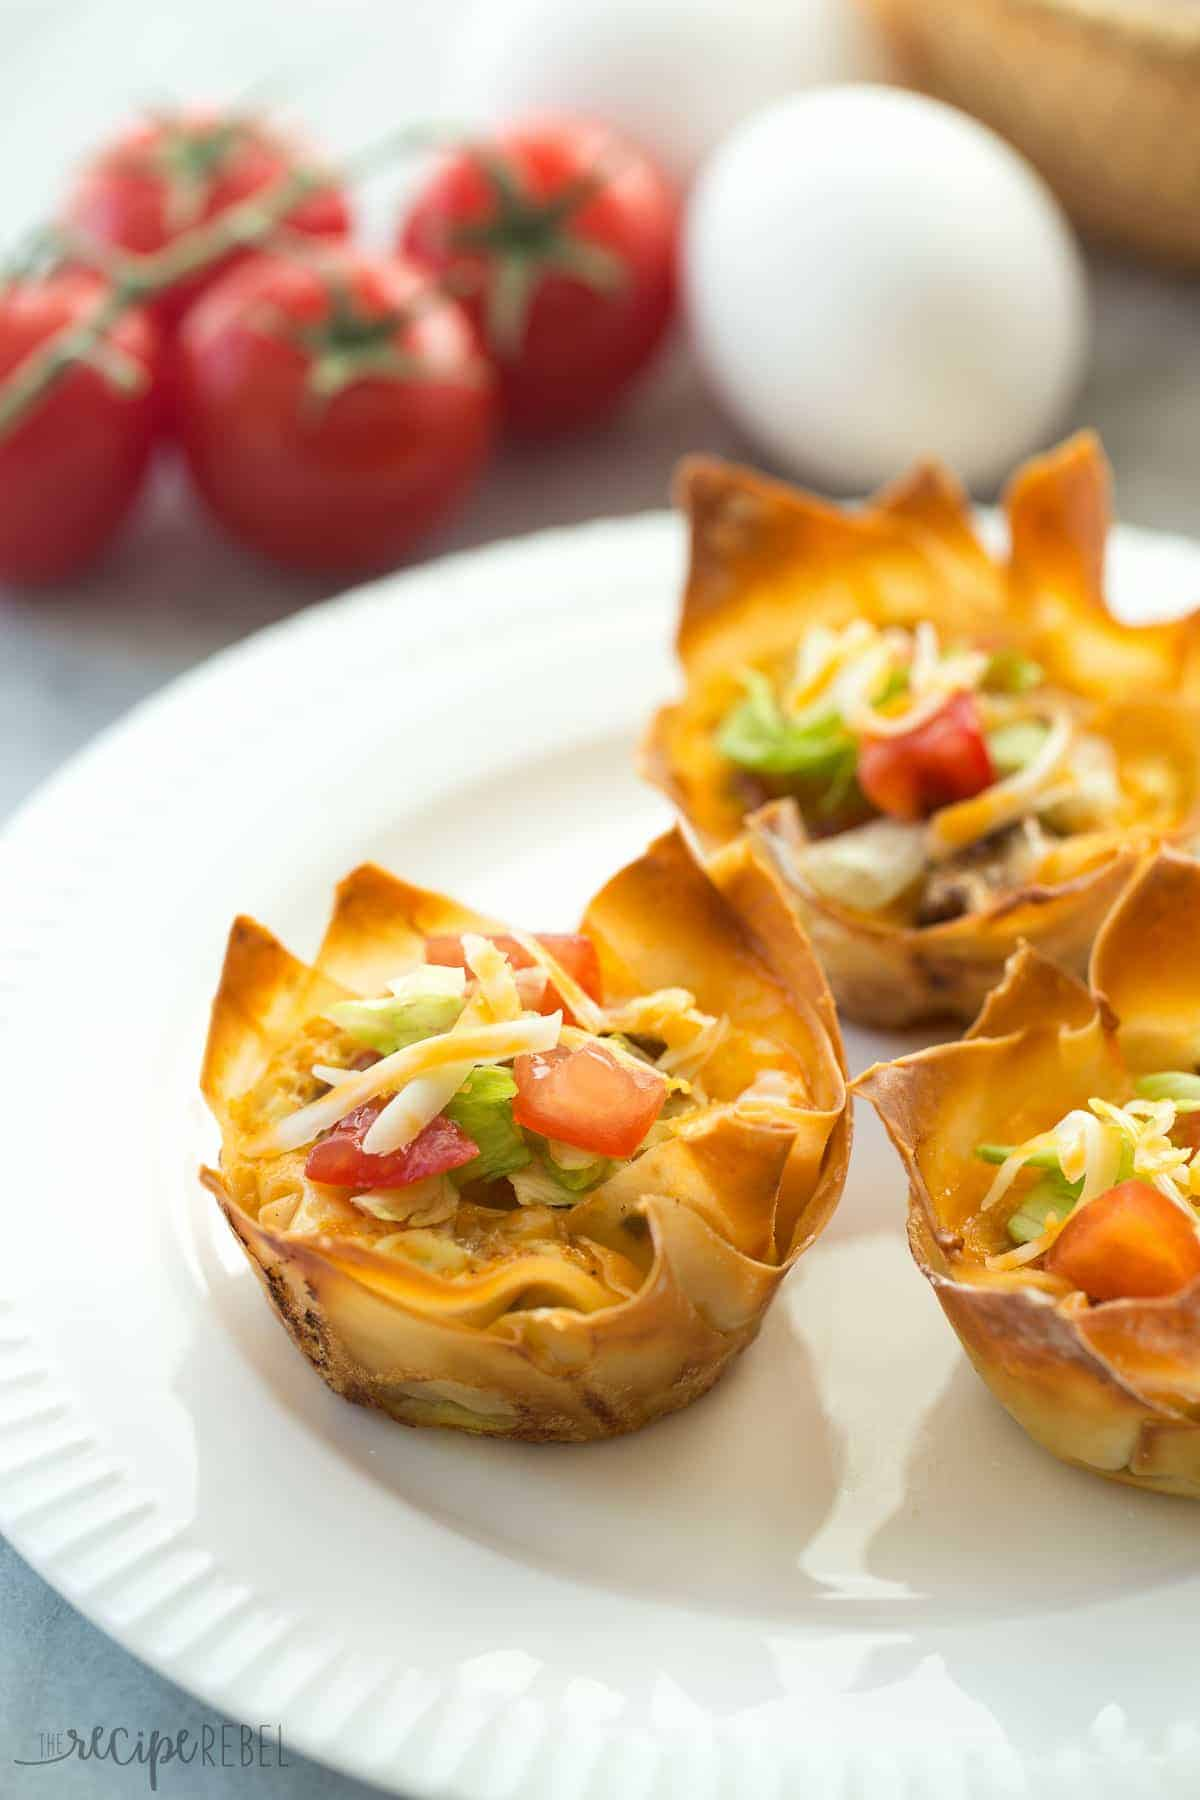 These Mini Mexican Wonton Quiche are simple to make and perfect for breakfast, brunch, or as appetizers! Most of the prep can be done ahead so you can relax and enjoy your holidays :)